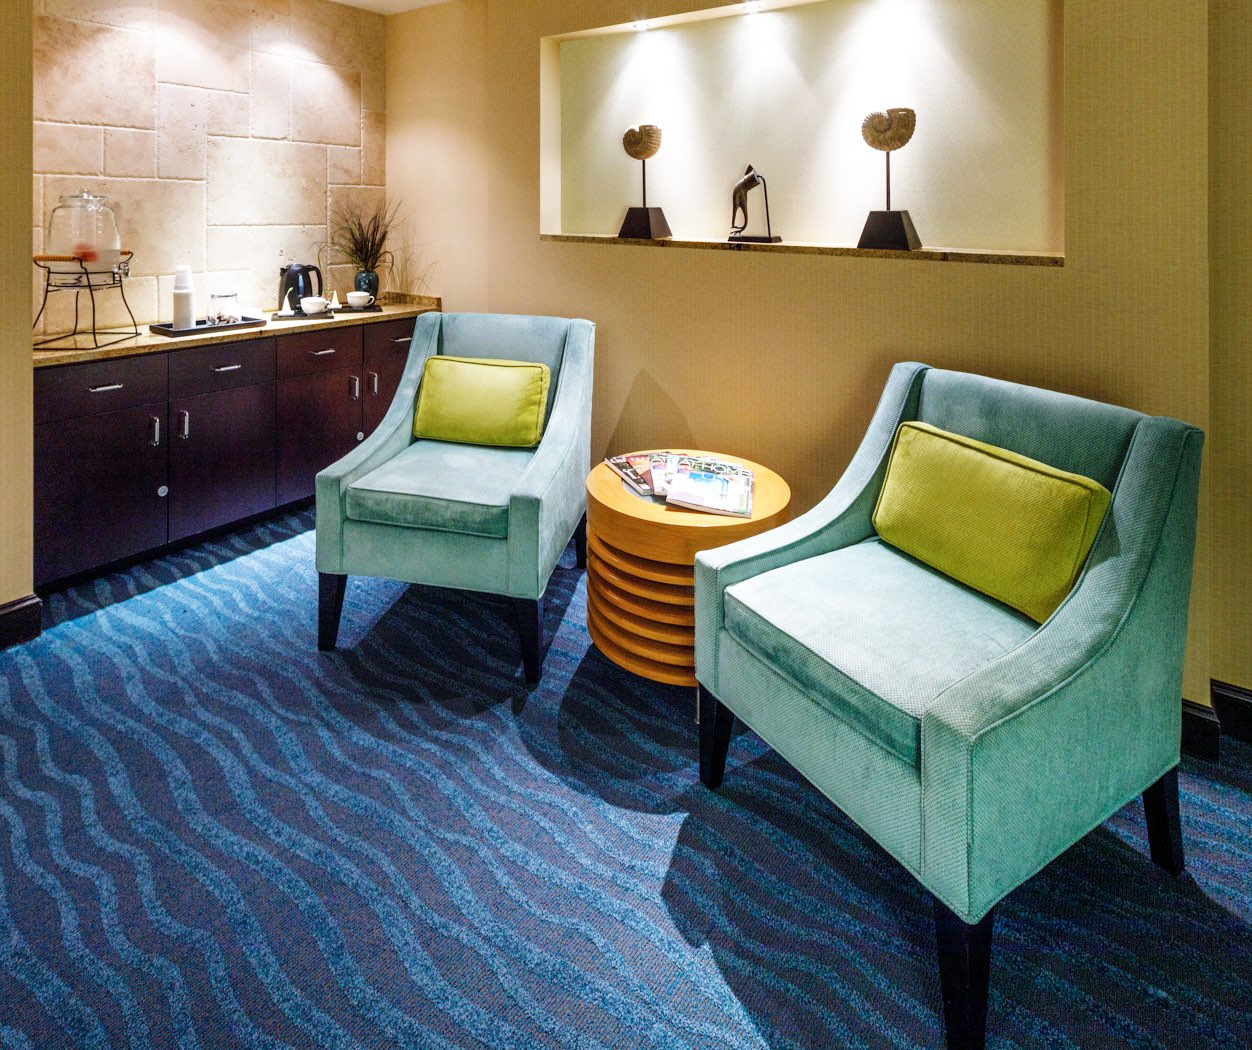 seating area with two turquoise seats